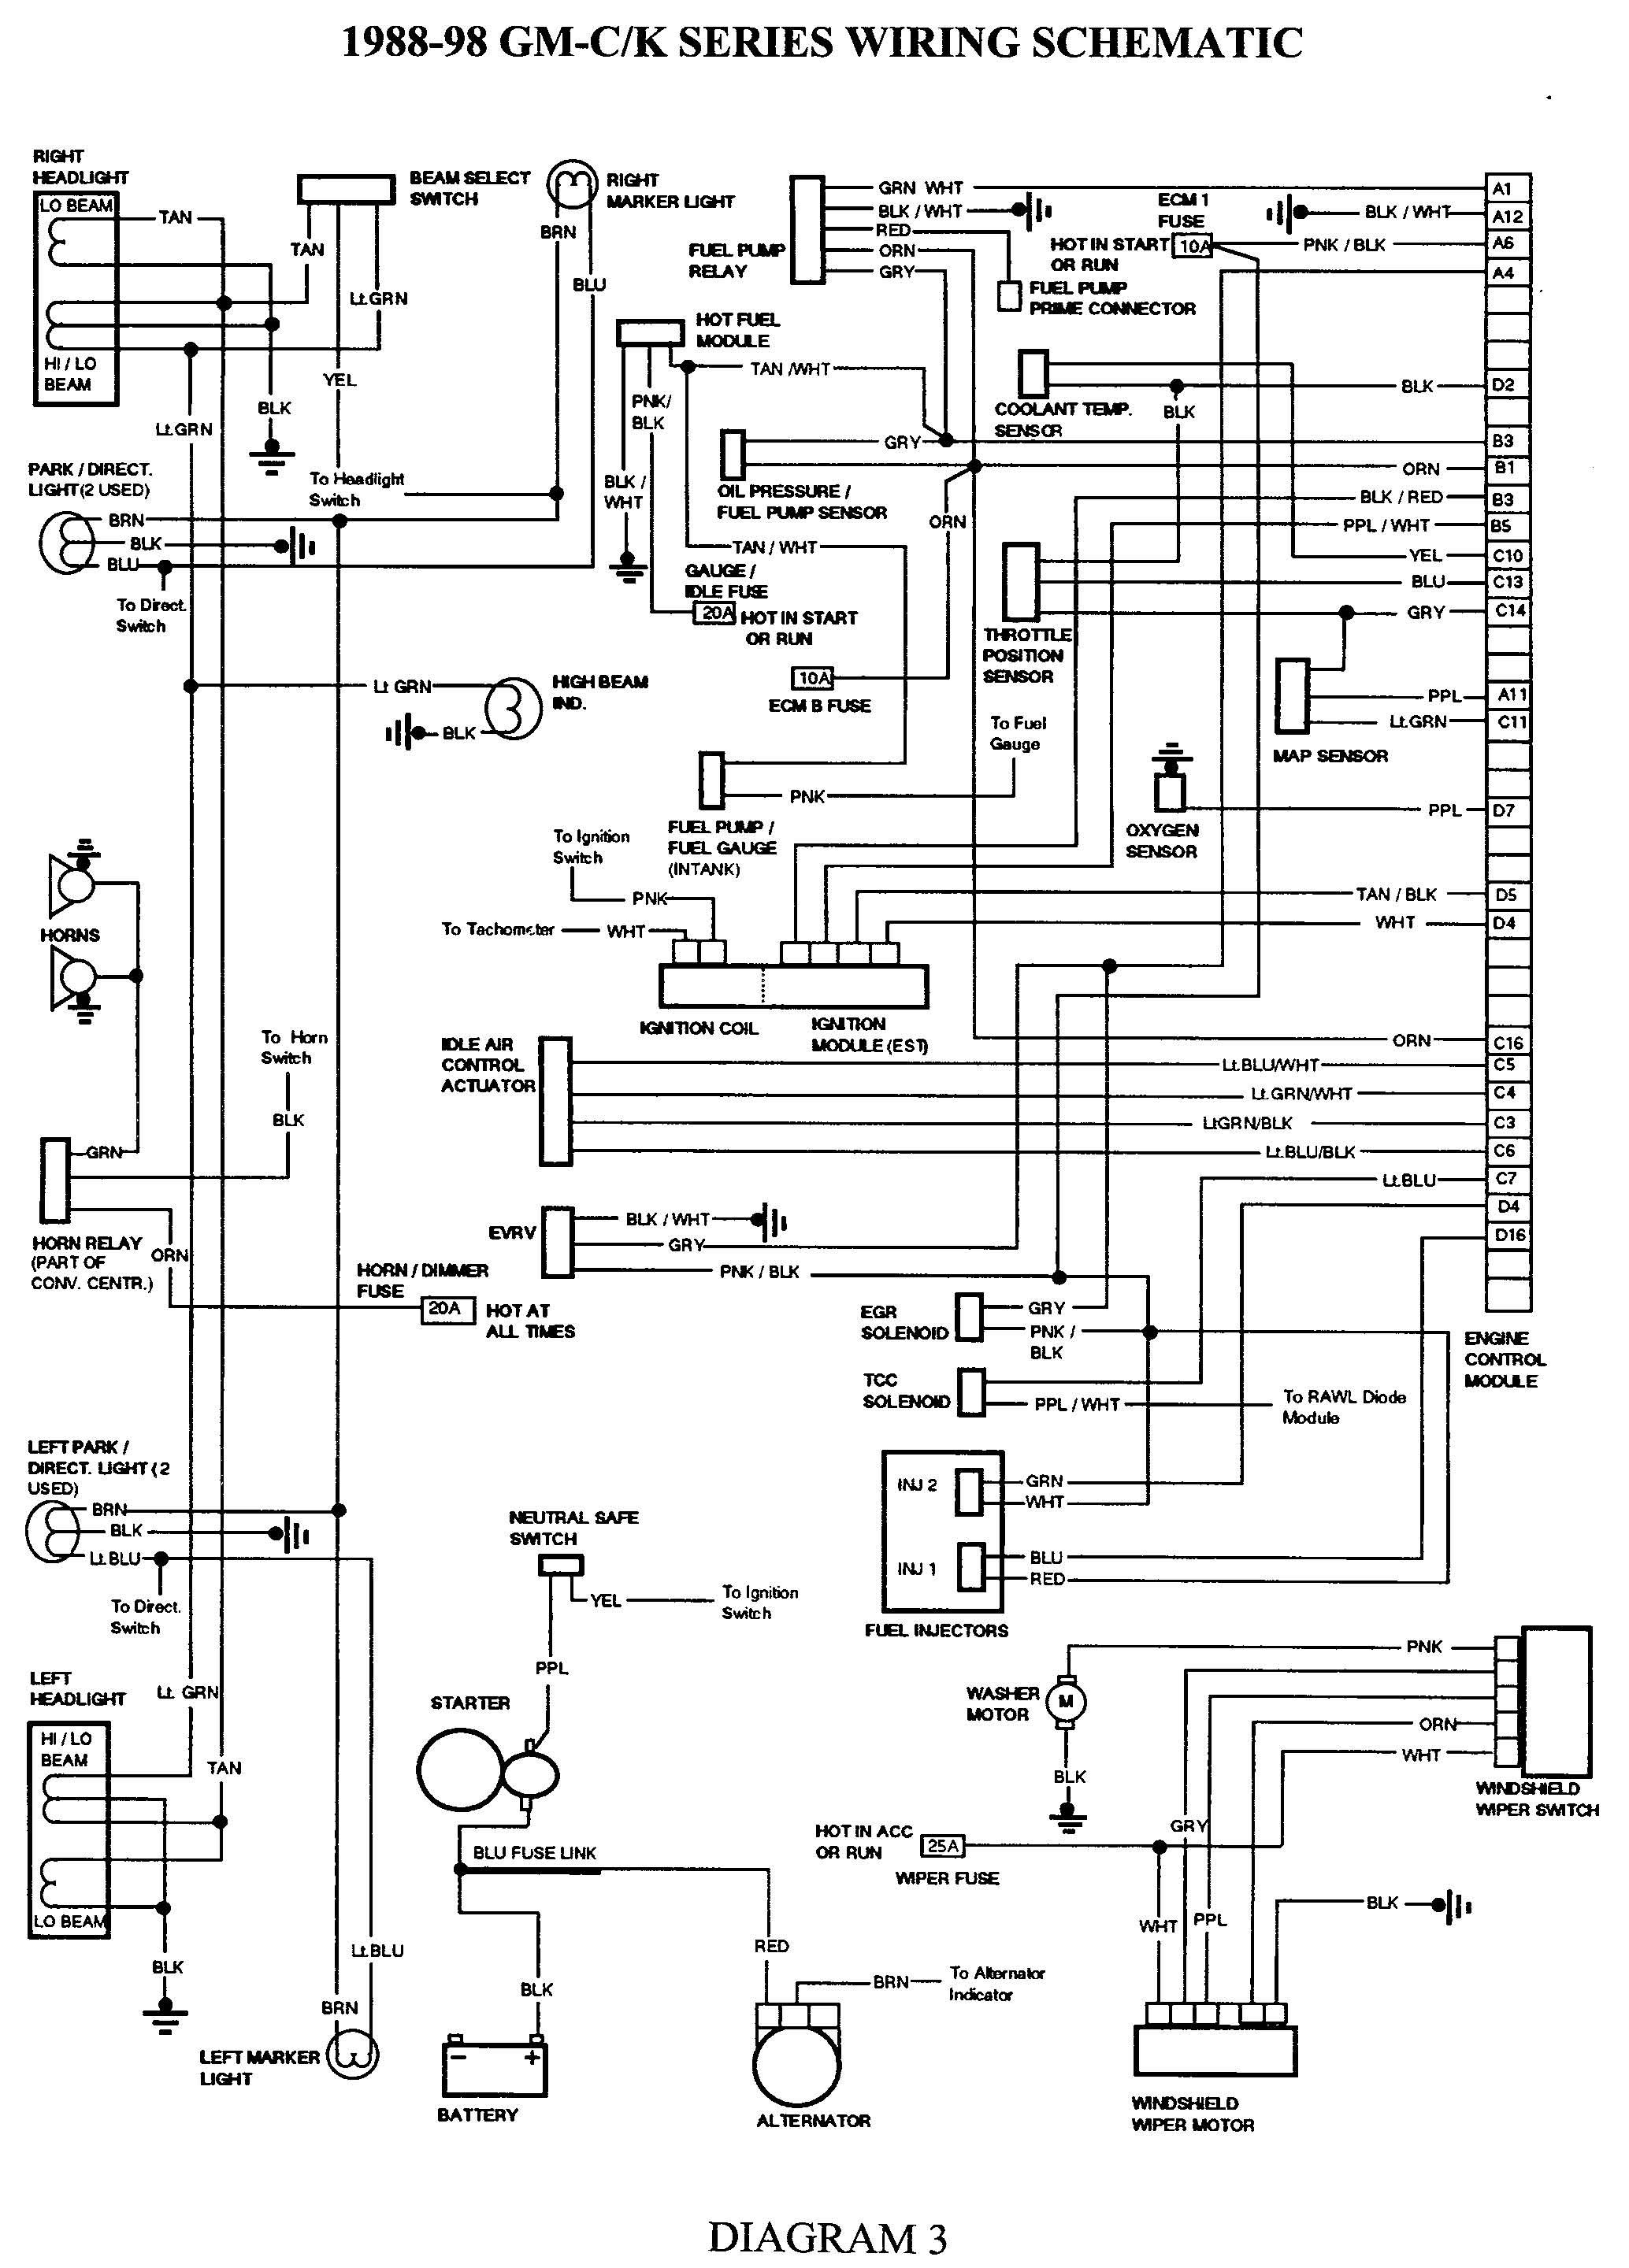 dvc wiring diagram audio pipe wrg 2570  a c wire diagram  wrg 2570  a c wire diagram